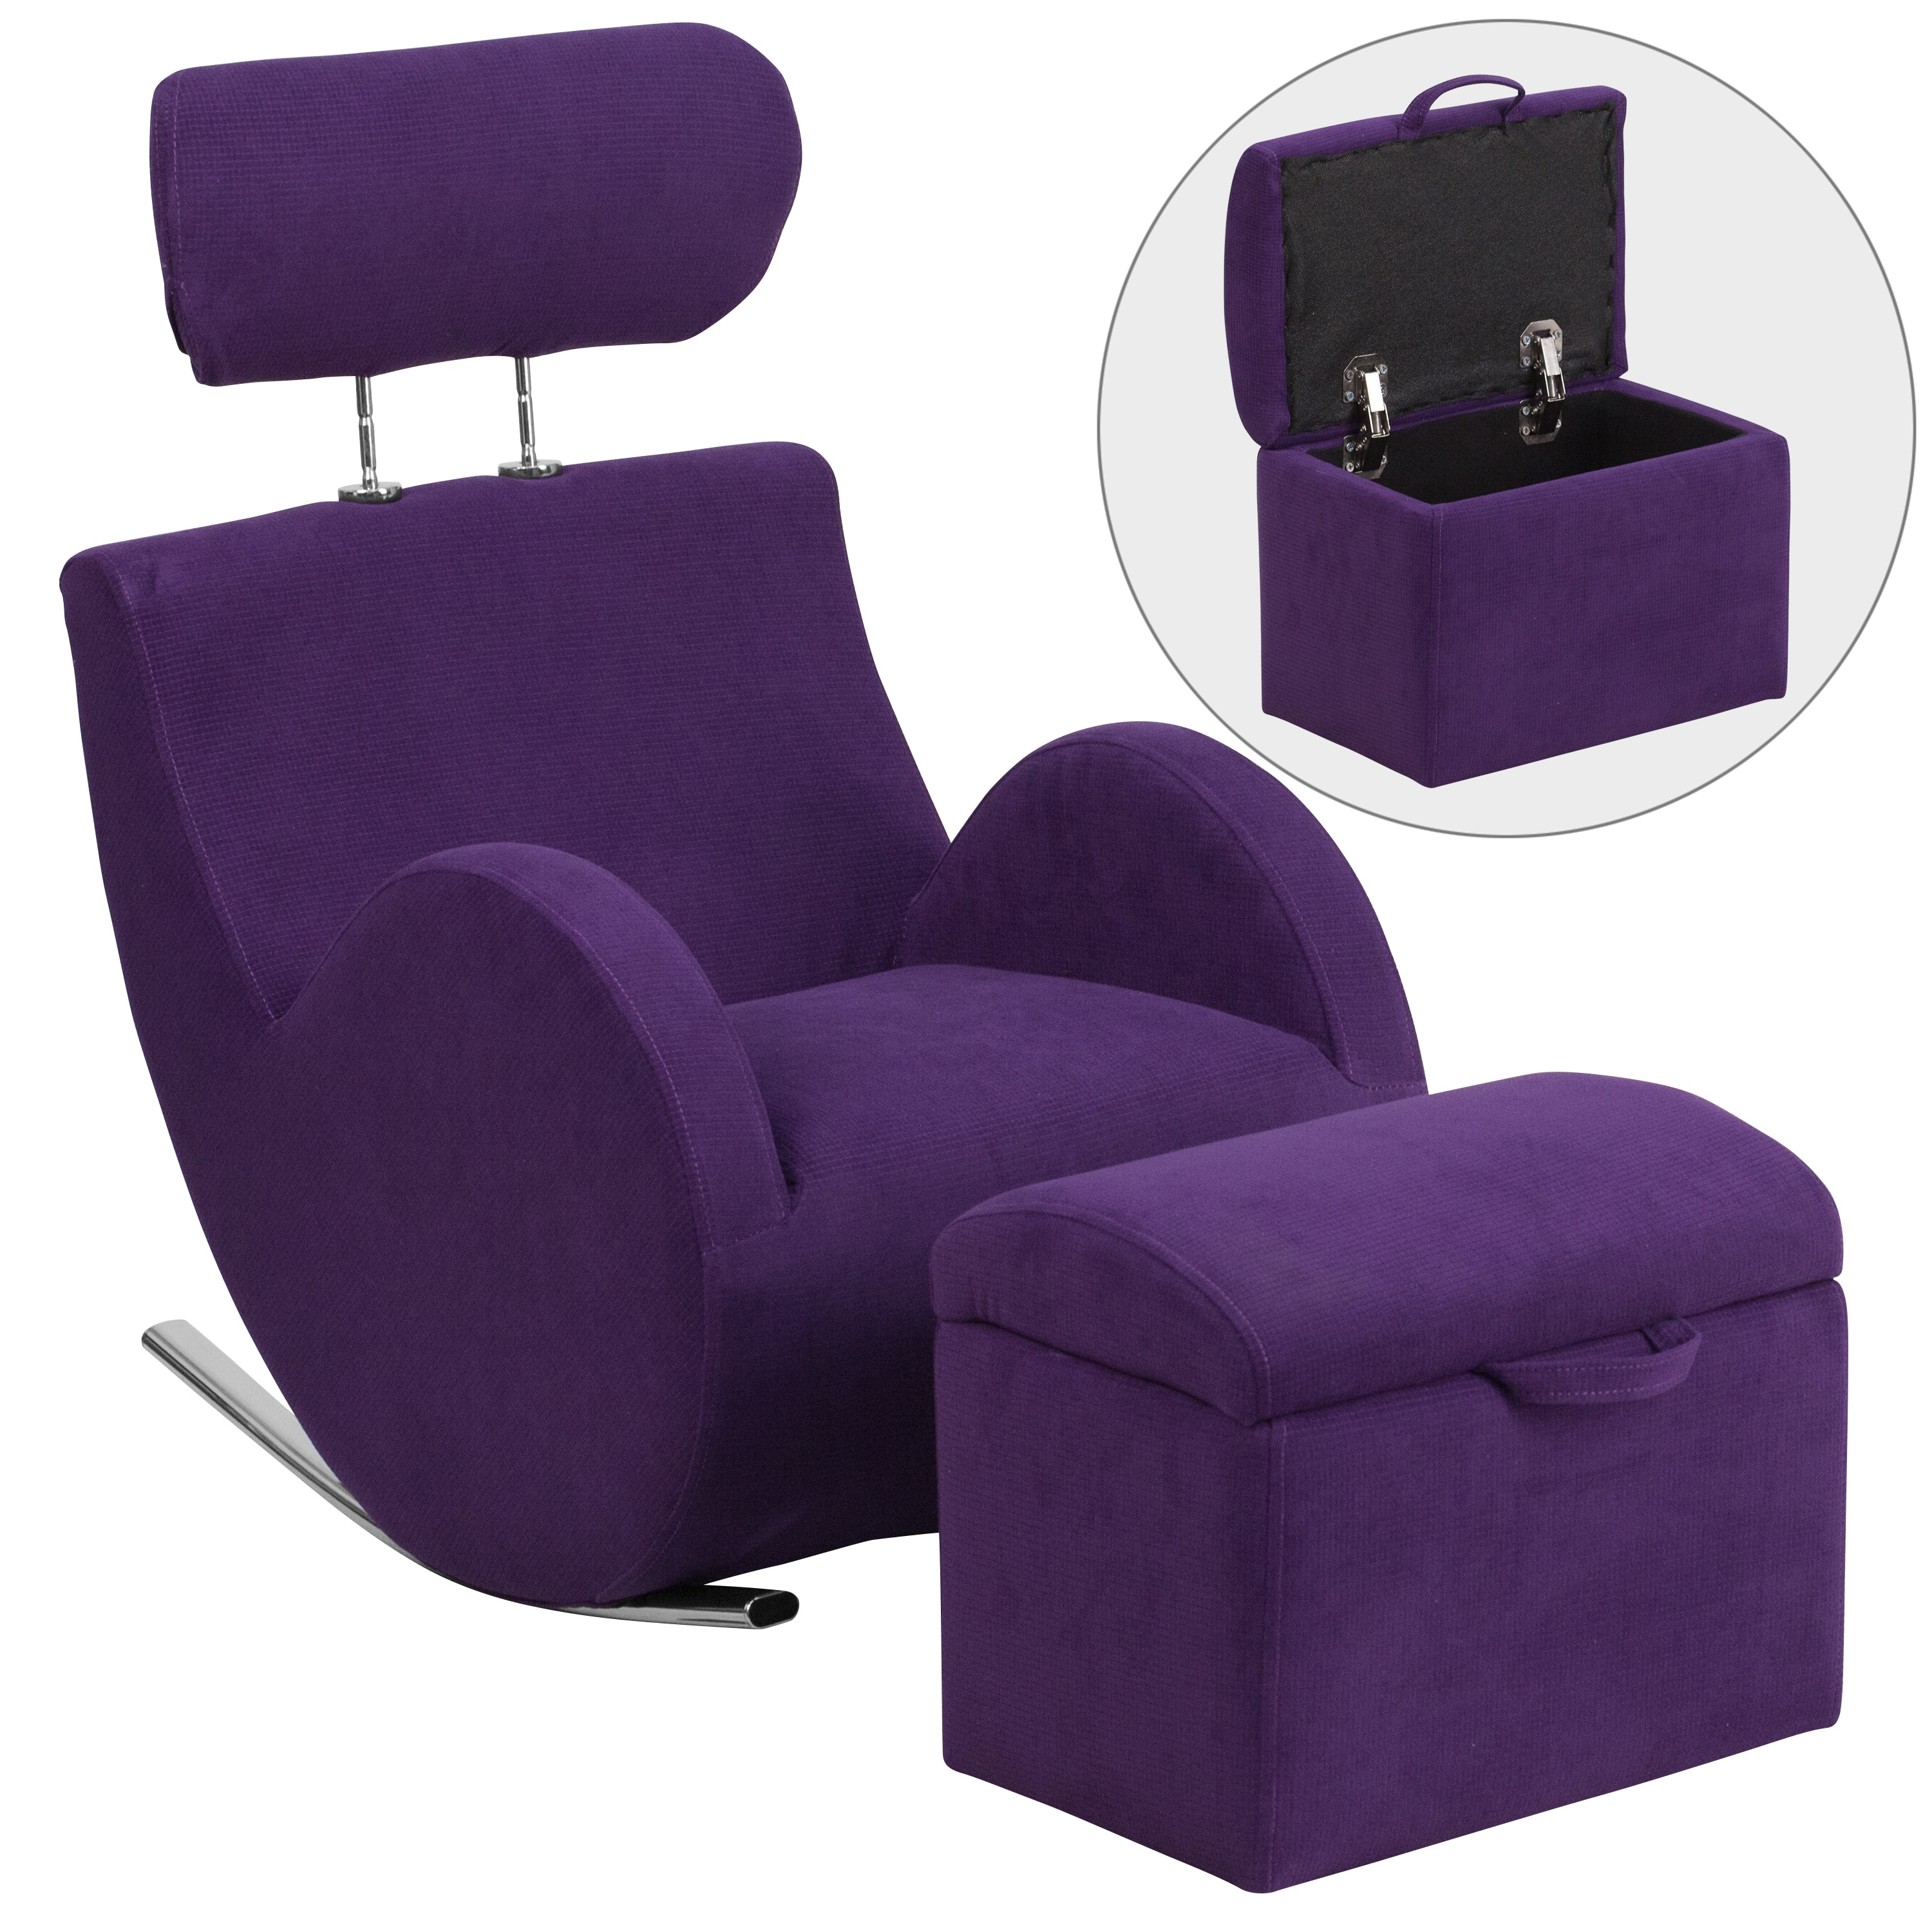 Shop Hercules Kids Rocking Chair And Storage Ottoman Set   Free Shipping  Today   Overstock.com   10611466